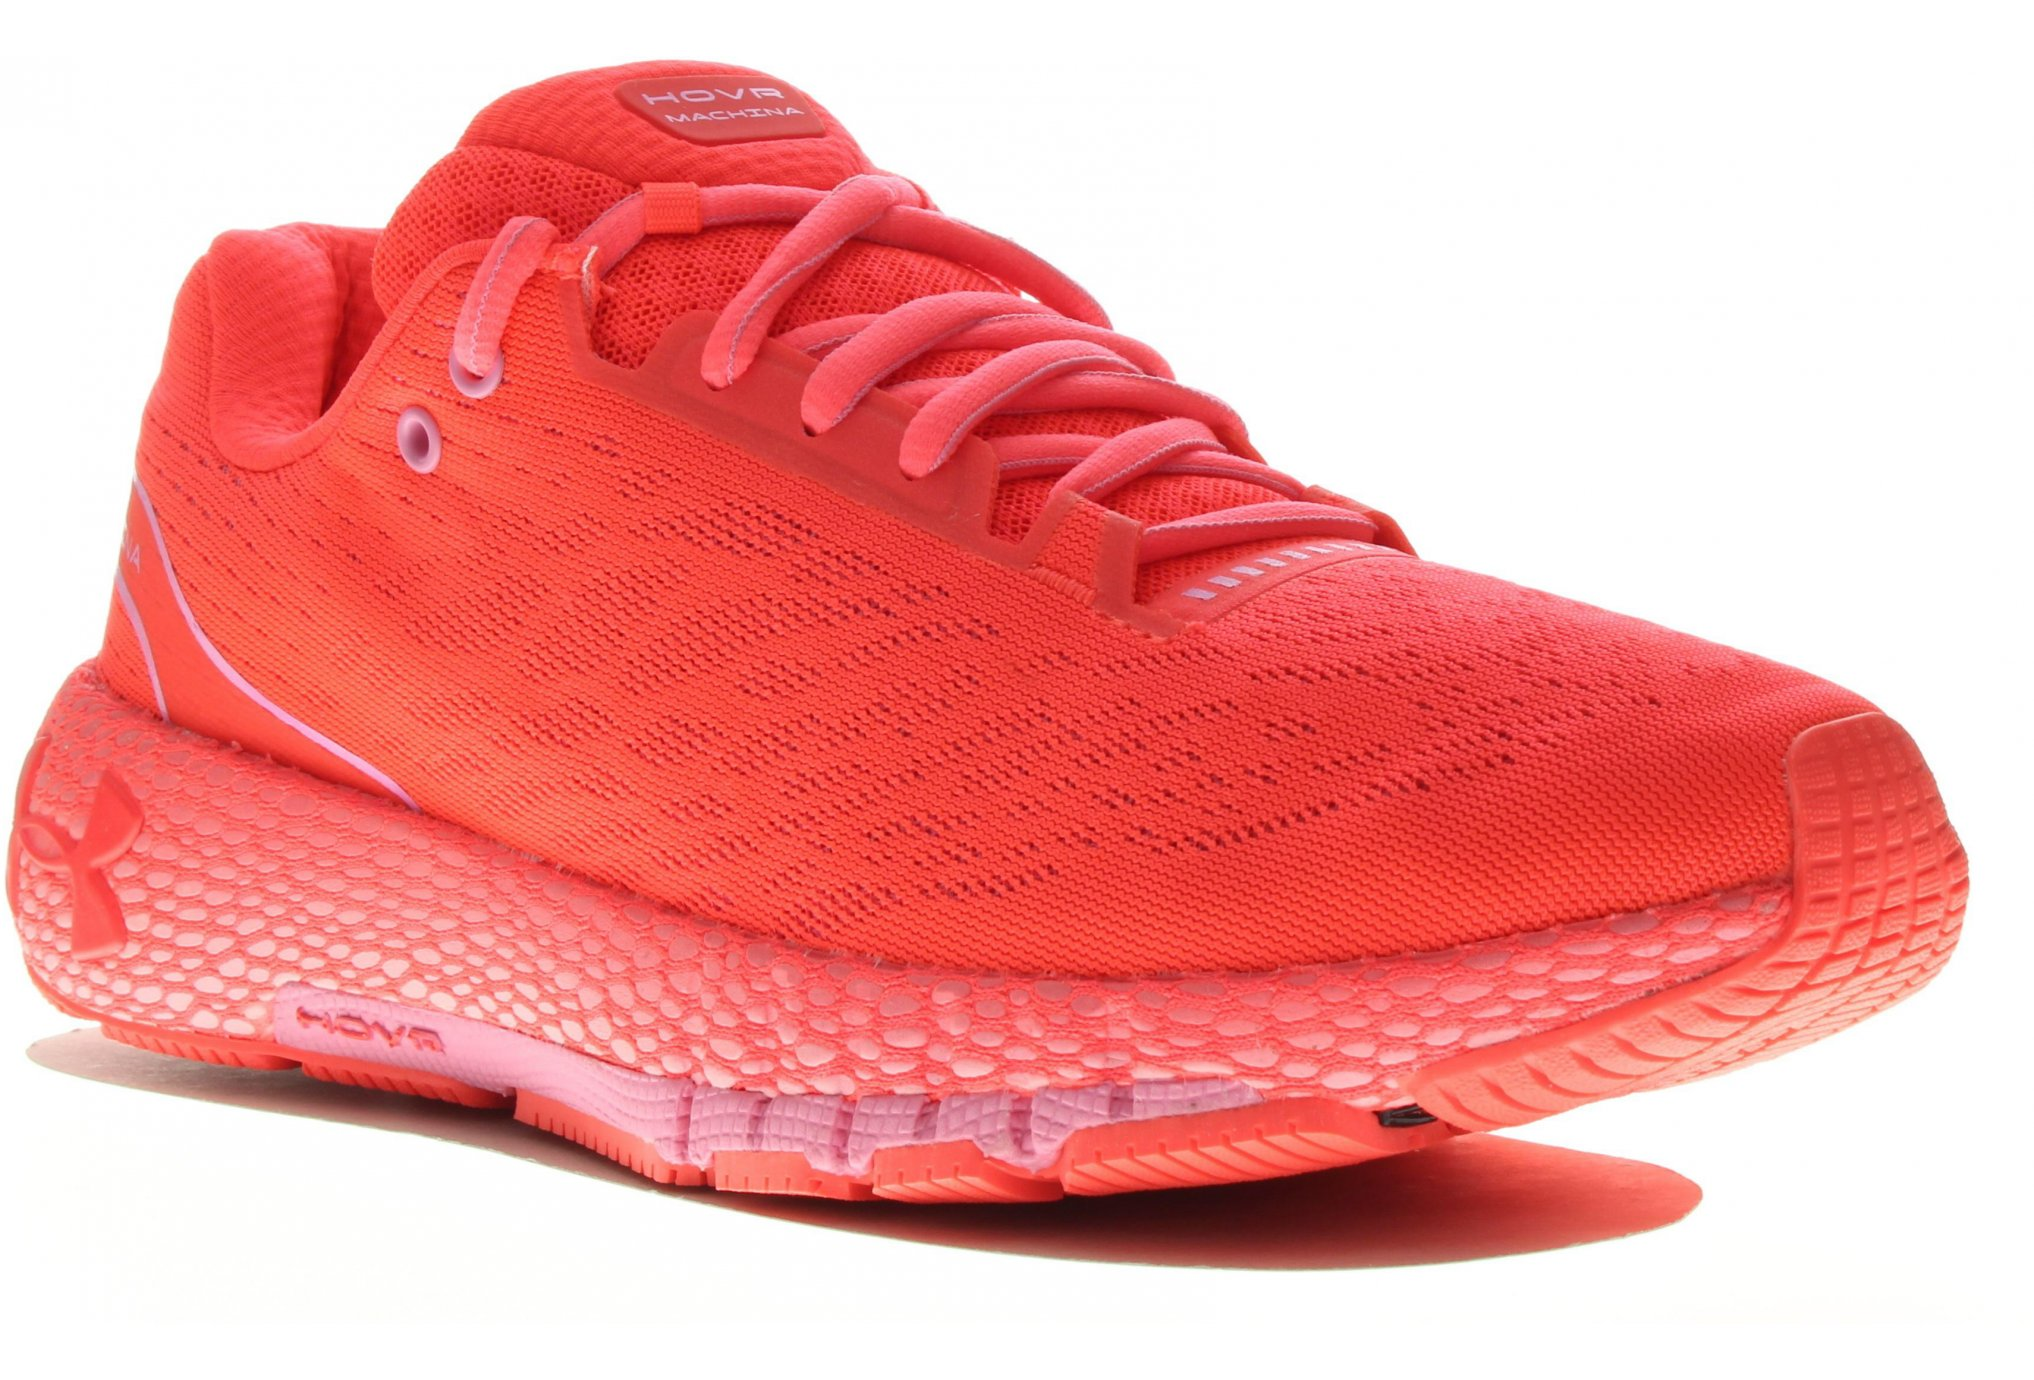 Under Armour HOVR Machina déstockage running